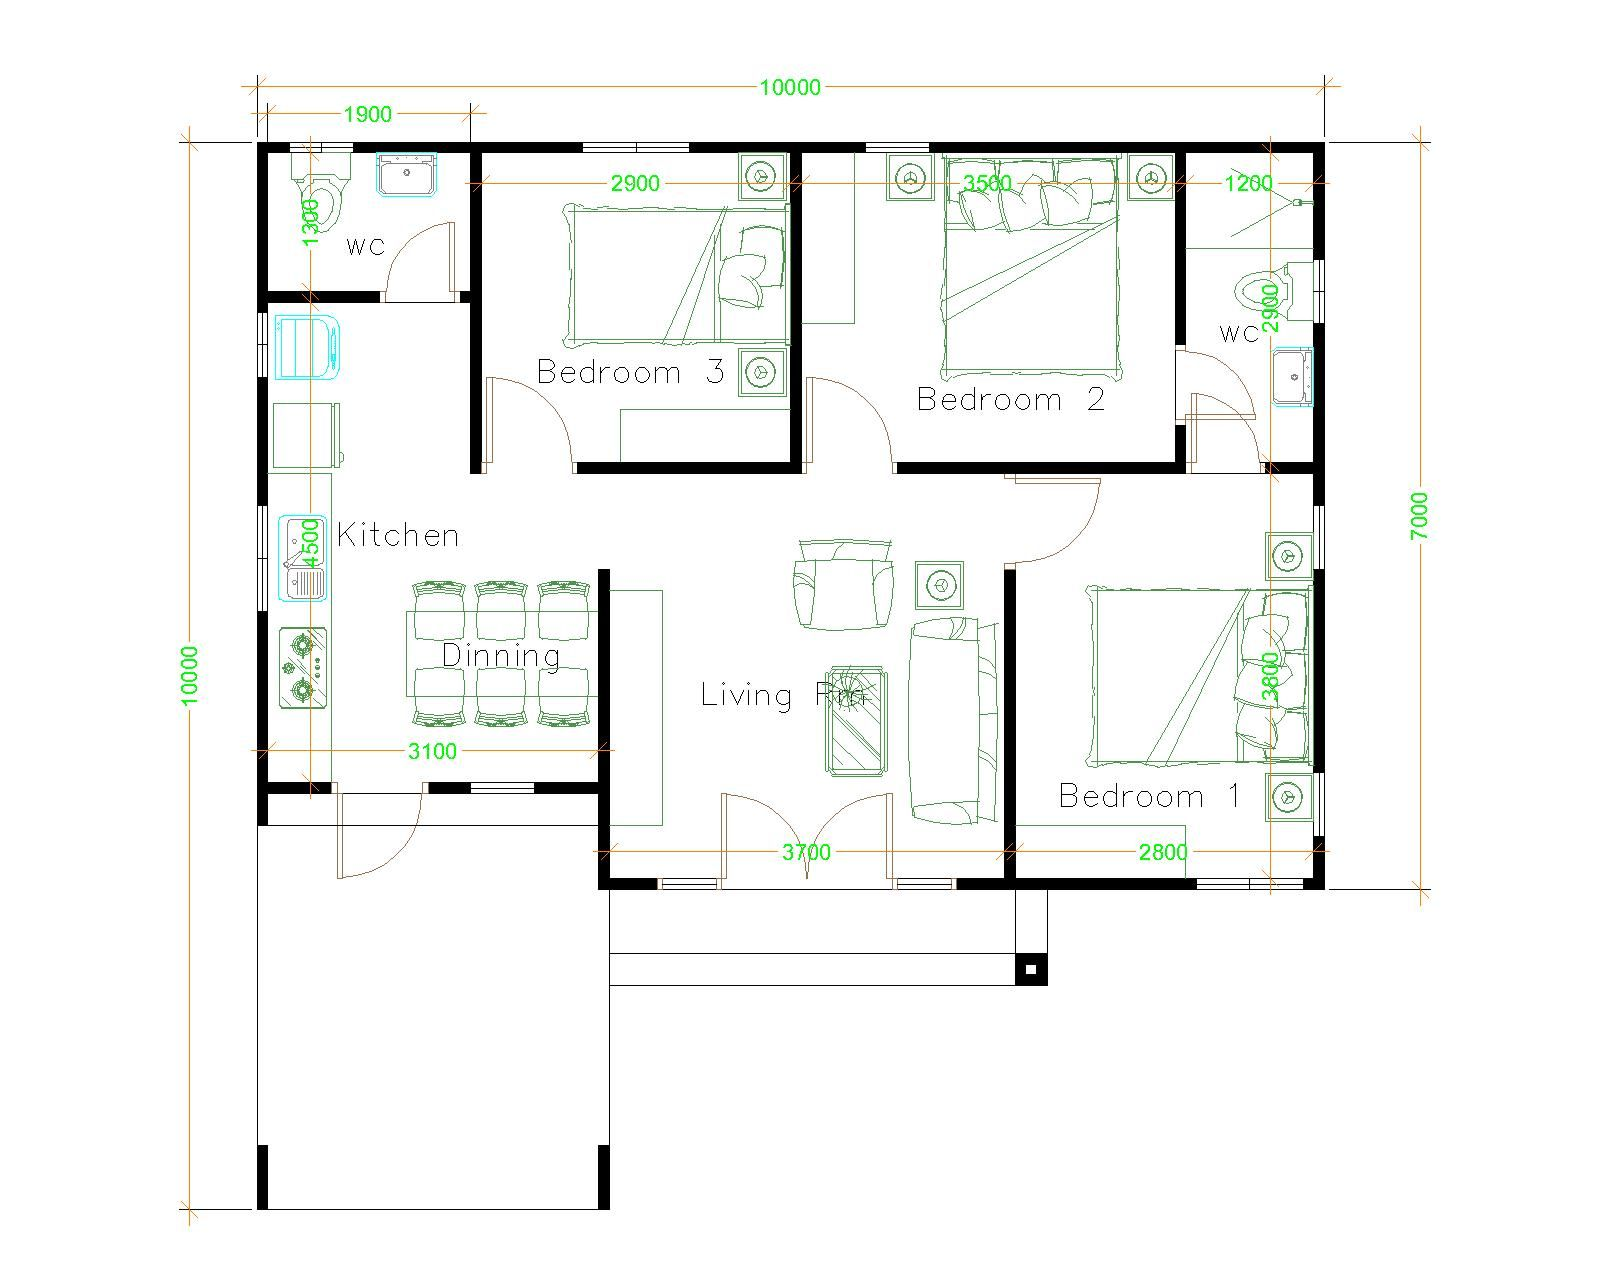 House Design 10x10 With 3 Bedrooms Hip Roof House Plans 3d Denah Rumah Denah Desain Rumah Desain Rumah